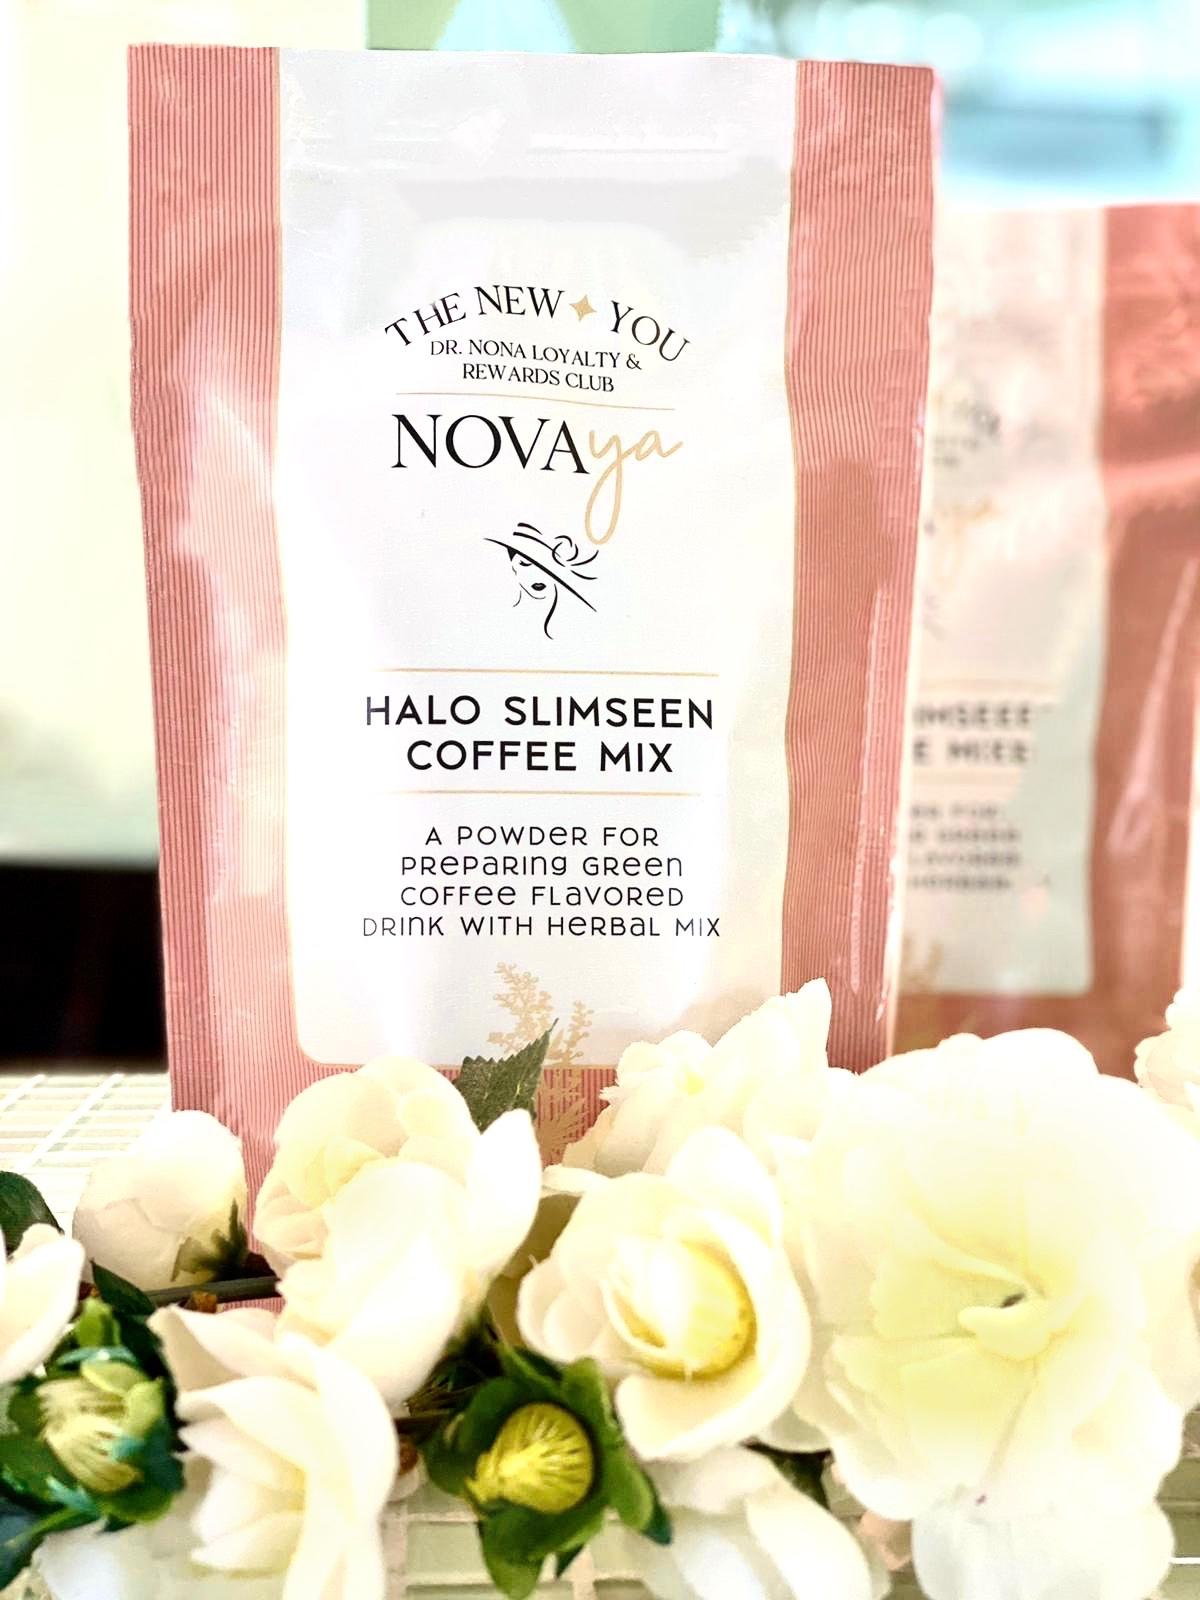 Halo Slimseen Coffee Mix